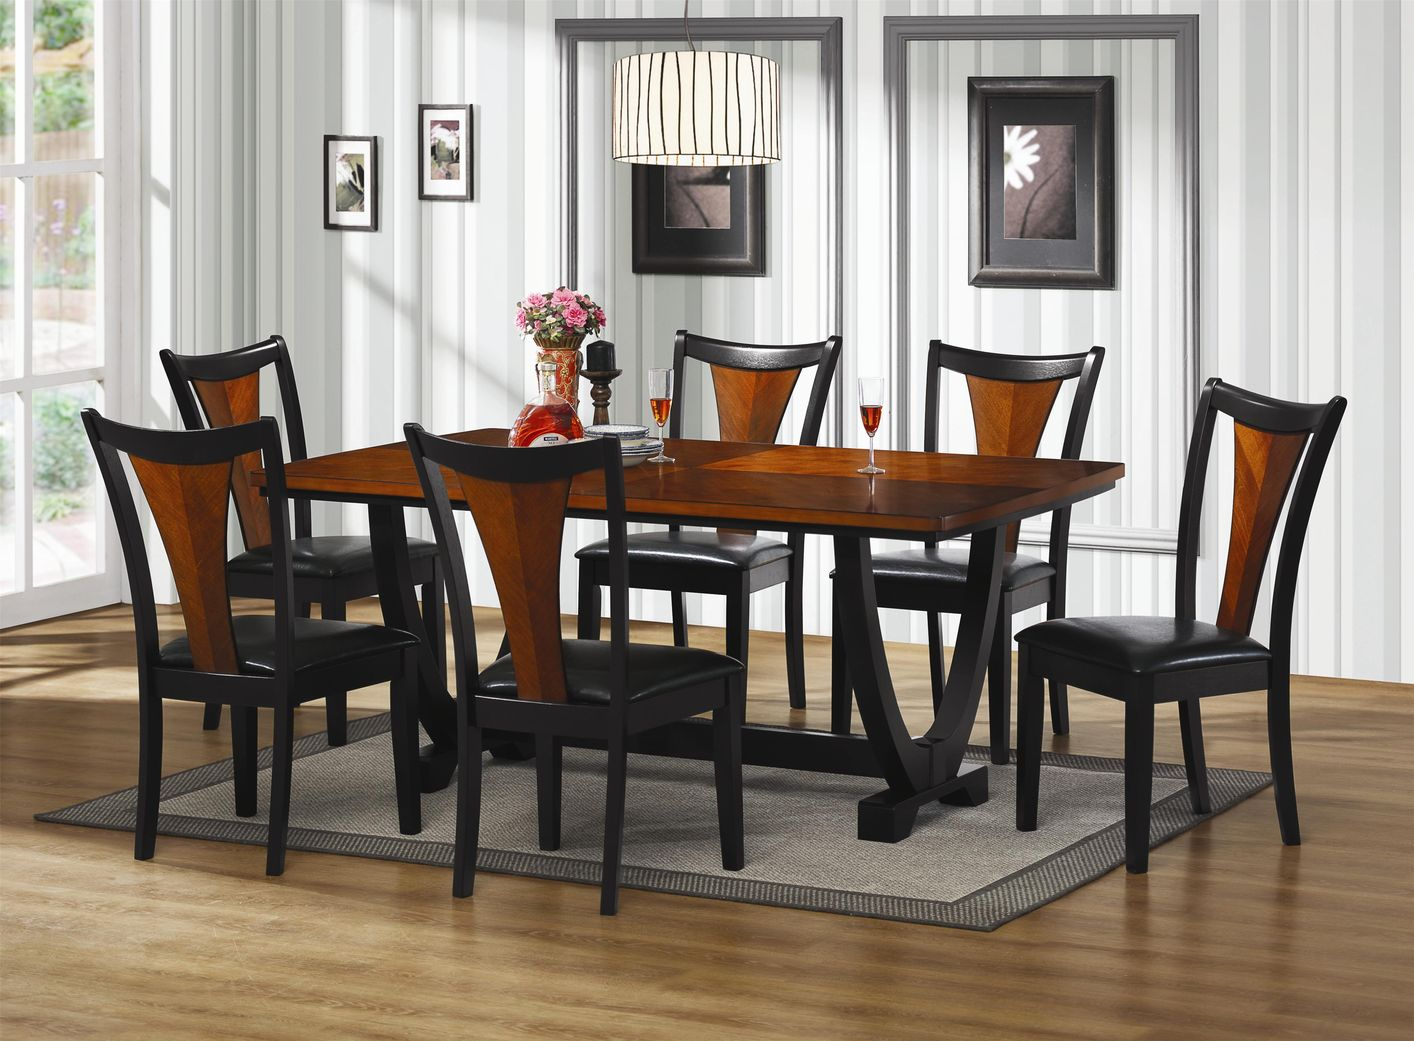 boyer black and cherry wood dining table set steal a sofa furniture outlet los angeles ca. Black Bedroom Furniture Sets. Home Design Ideas